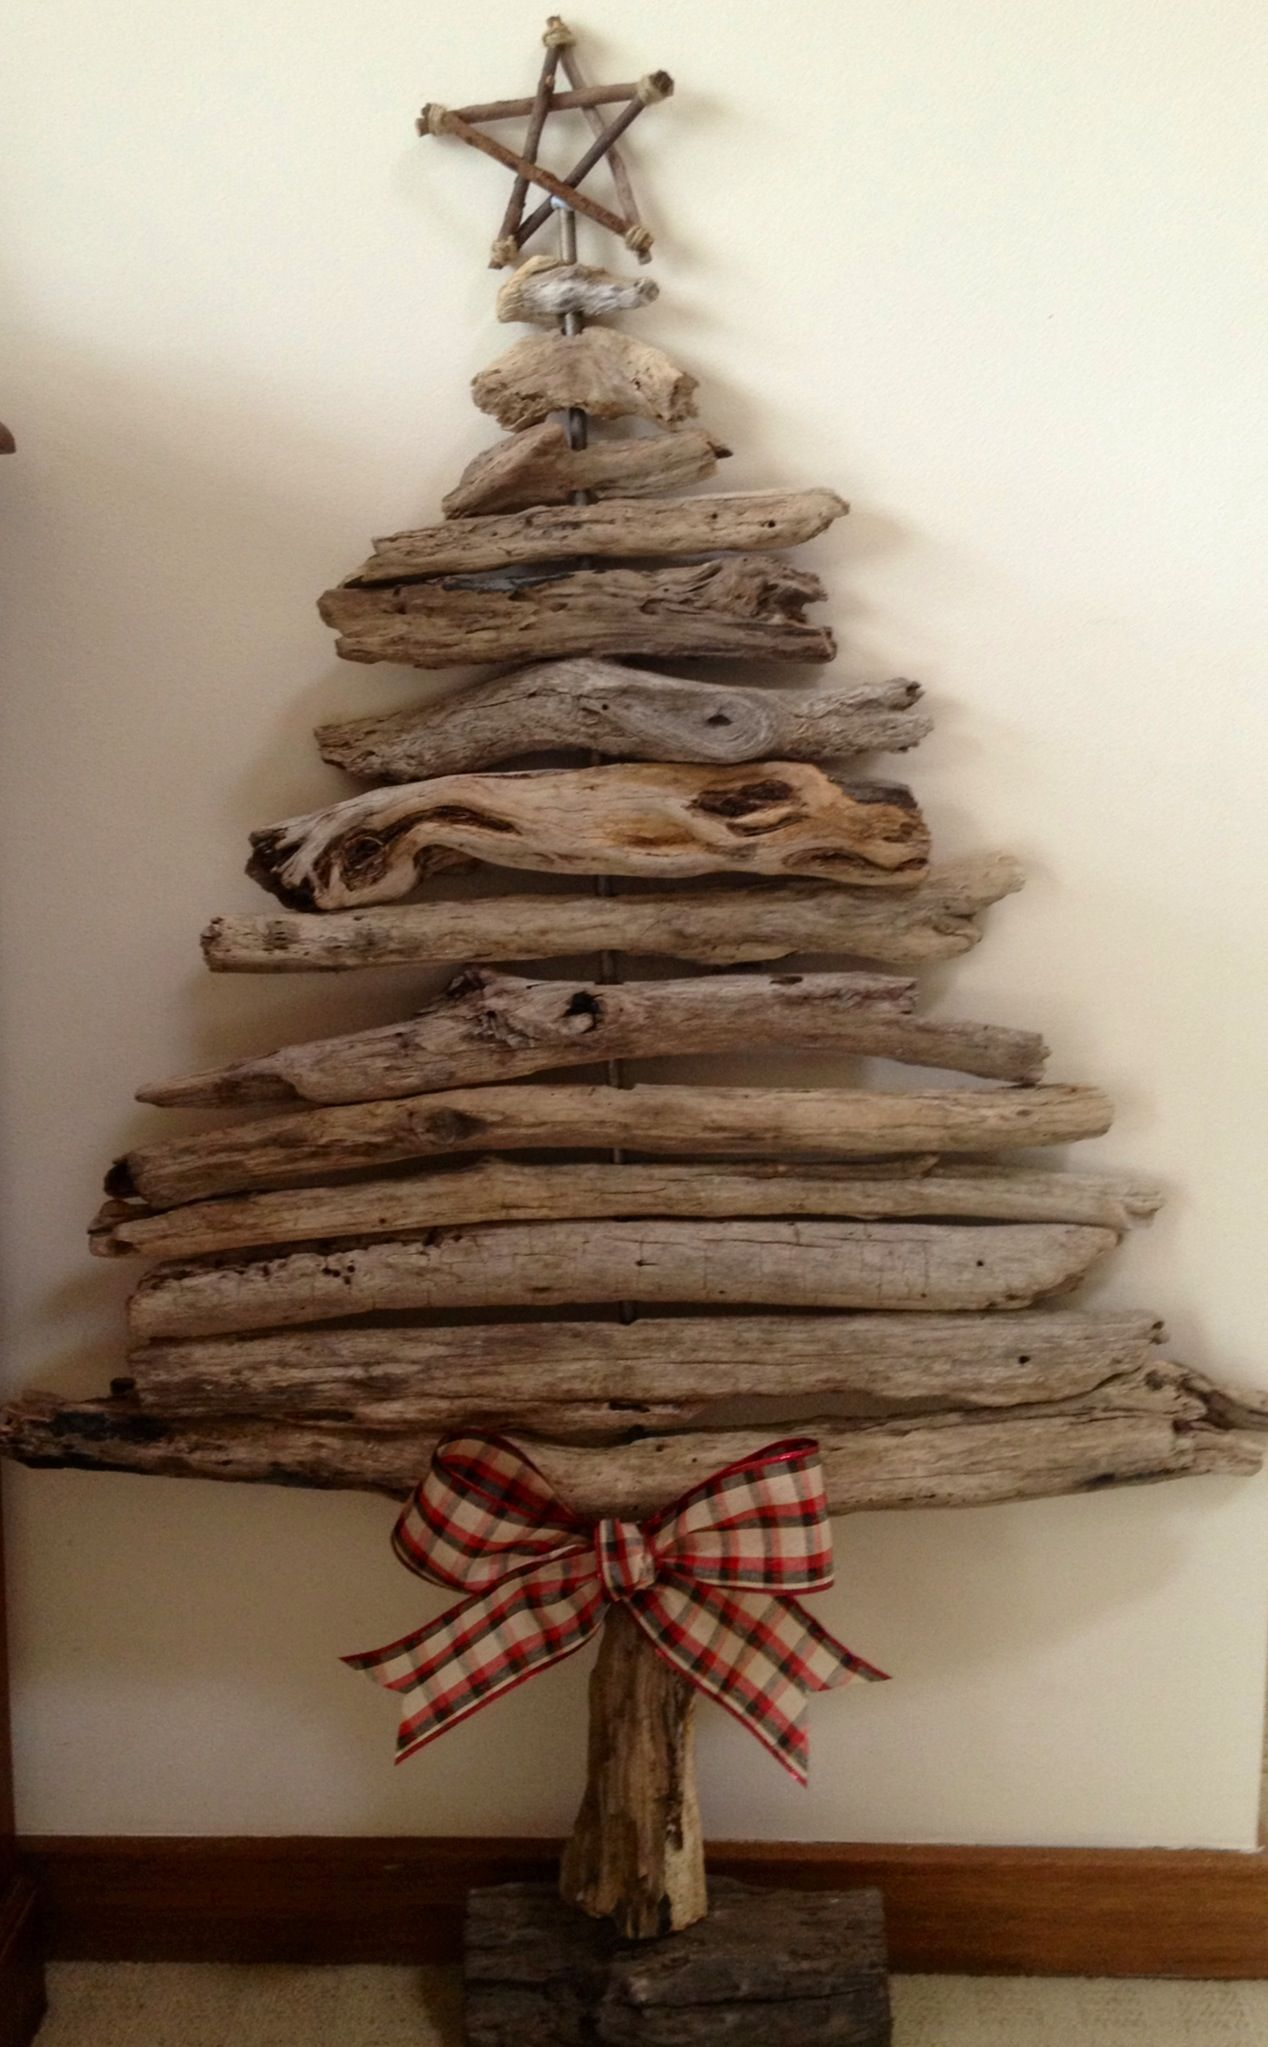 Driftwood Christmas Tree.....keep this in mind while at the beach ...